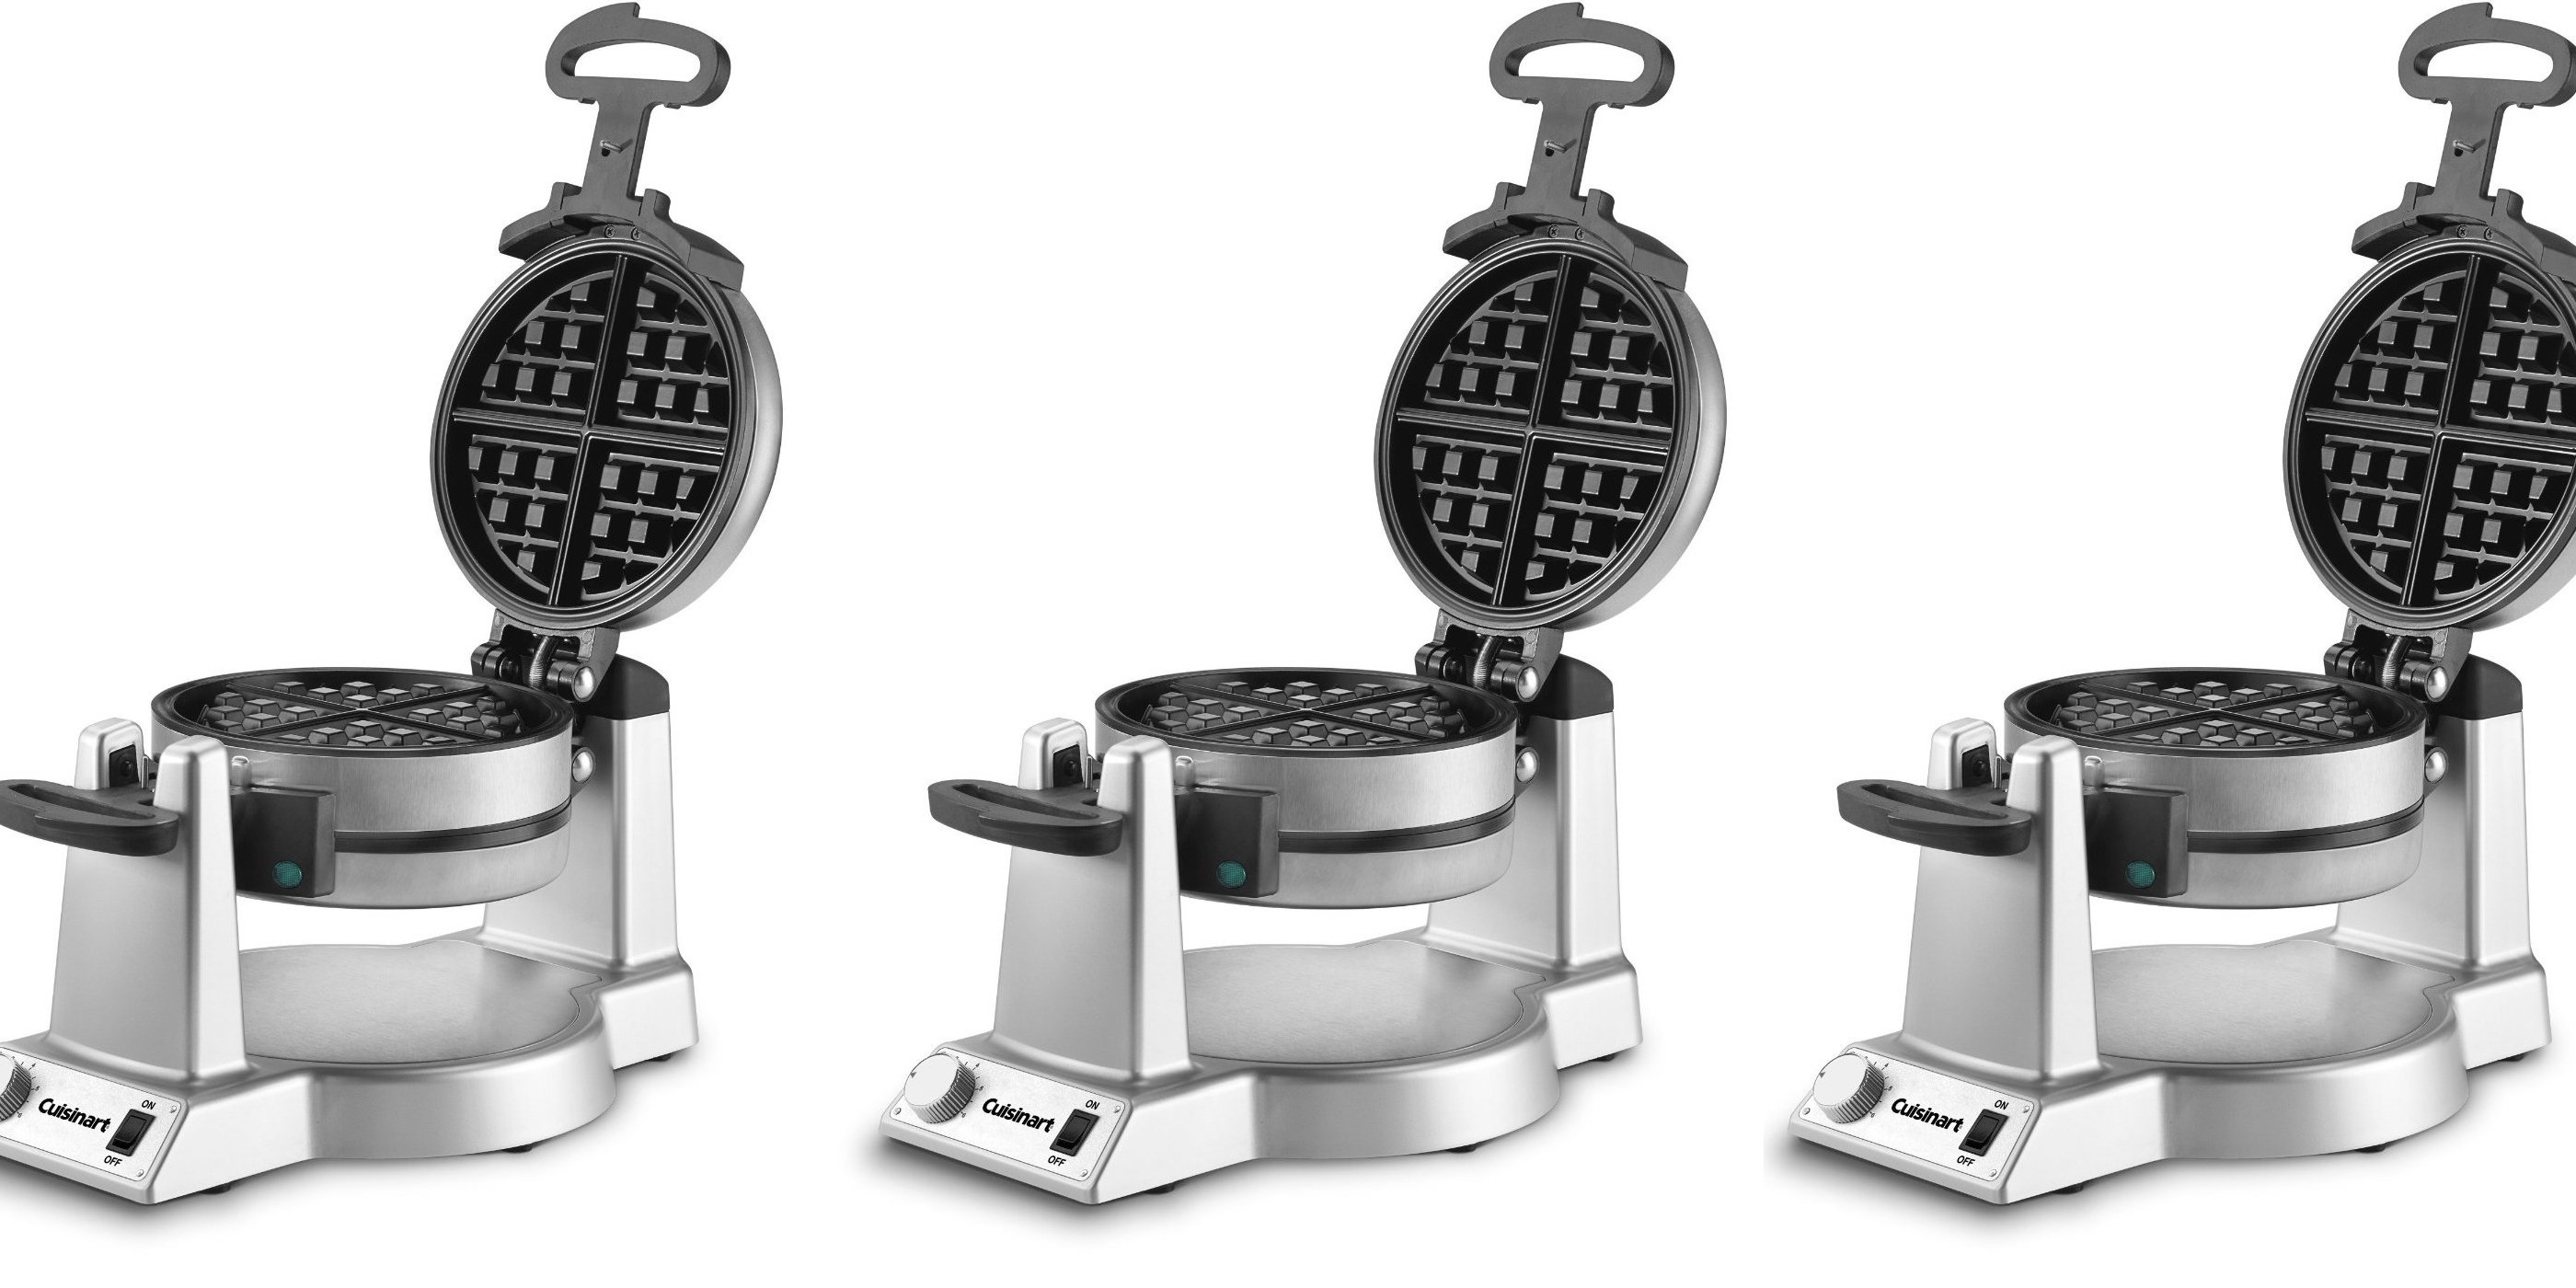 cuisinart-double-belgian-waffle-maker-in-stainless-steel-waf-f20-1